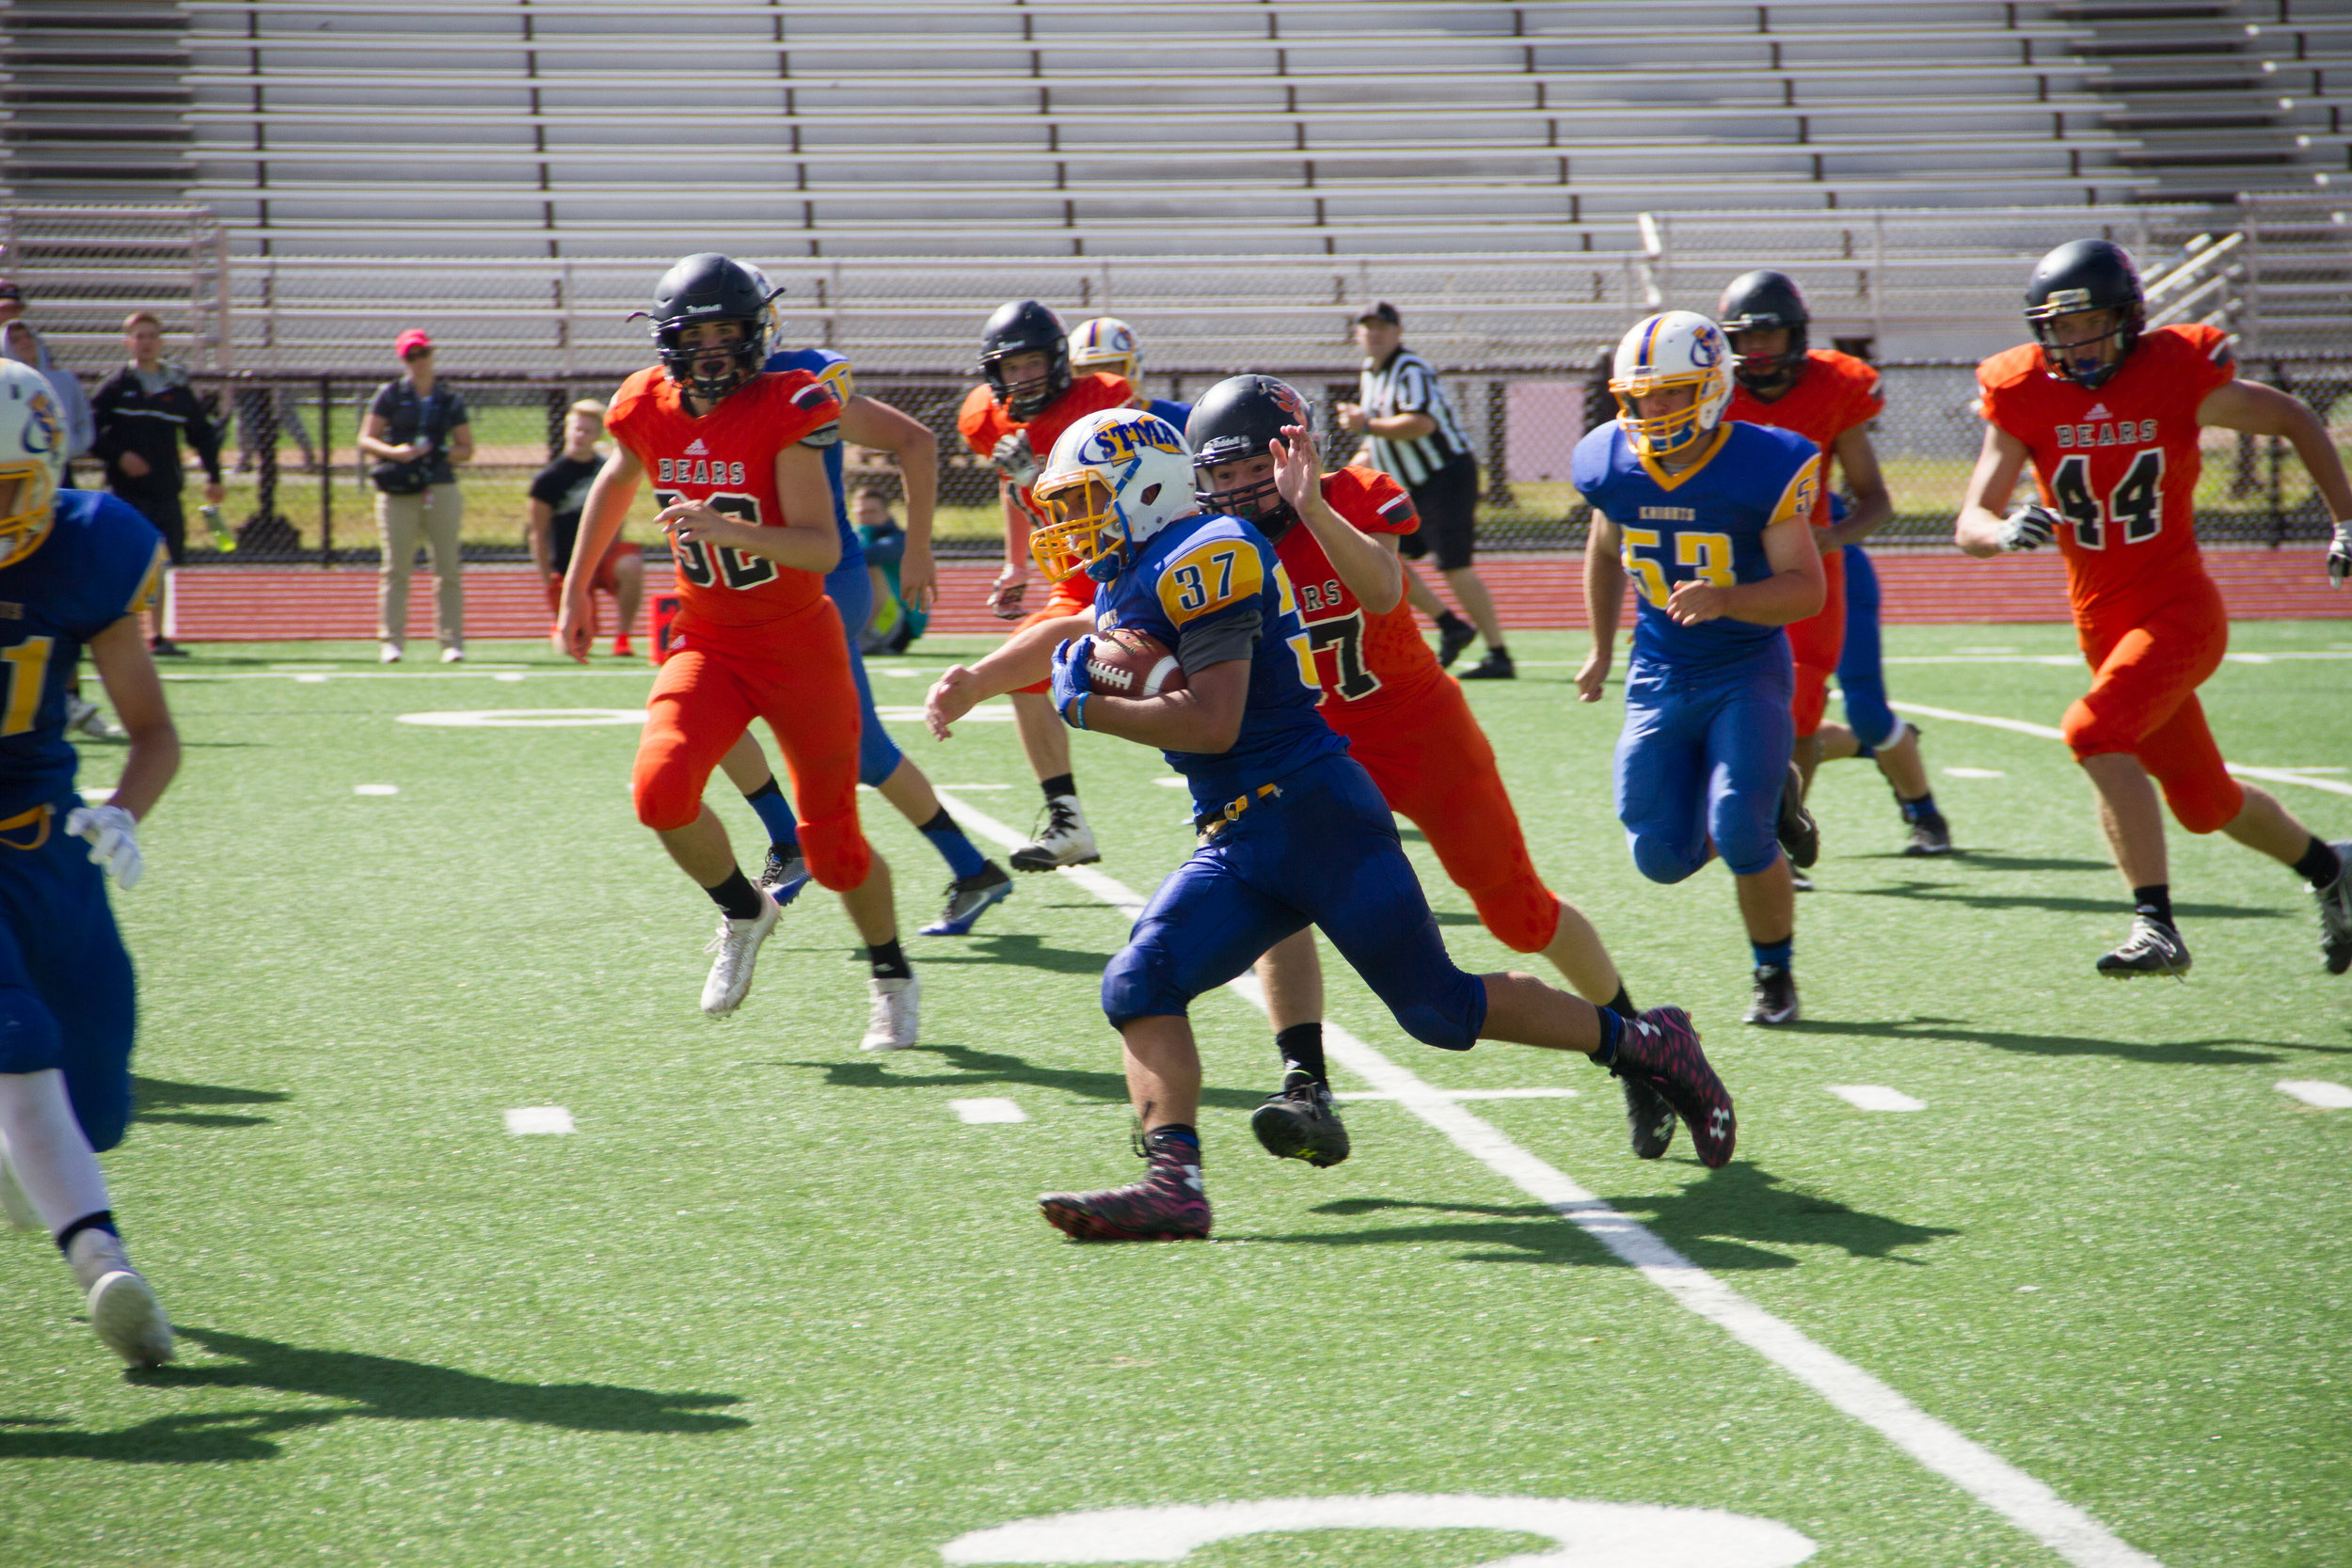 Football, Junior Football, American Football, Sports, Sport Event